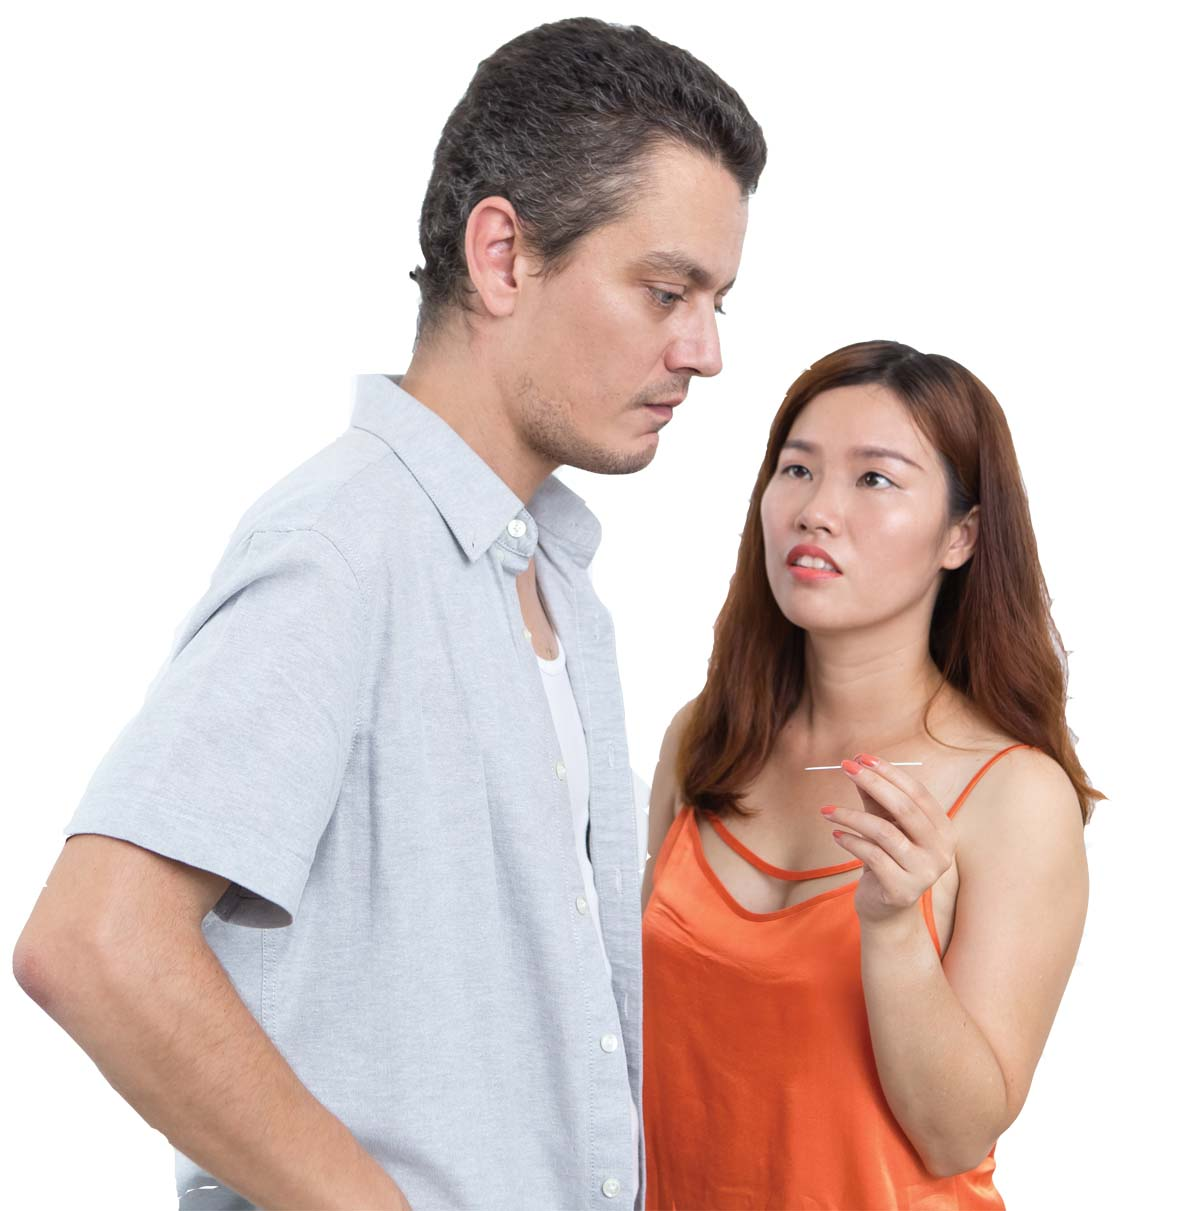 Male infertility? Acupuncture can help!